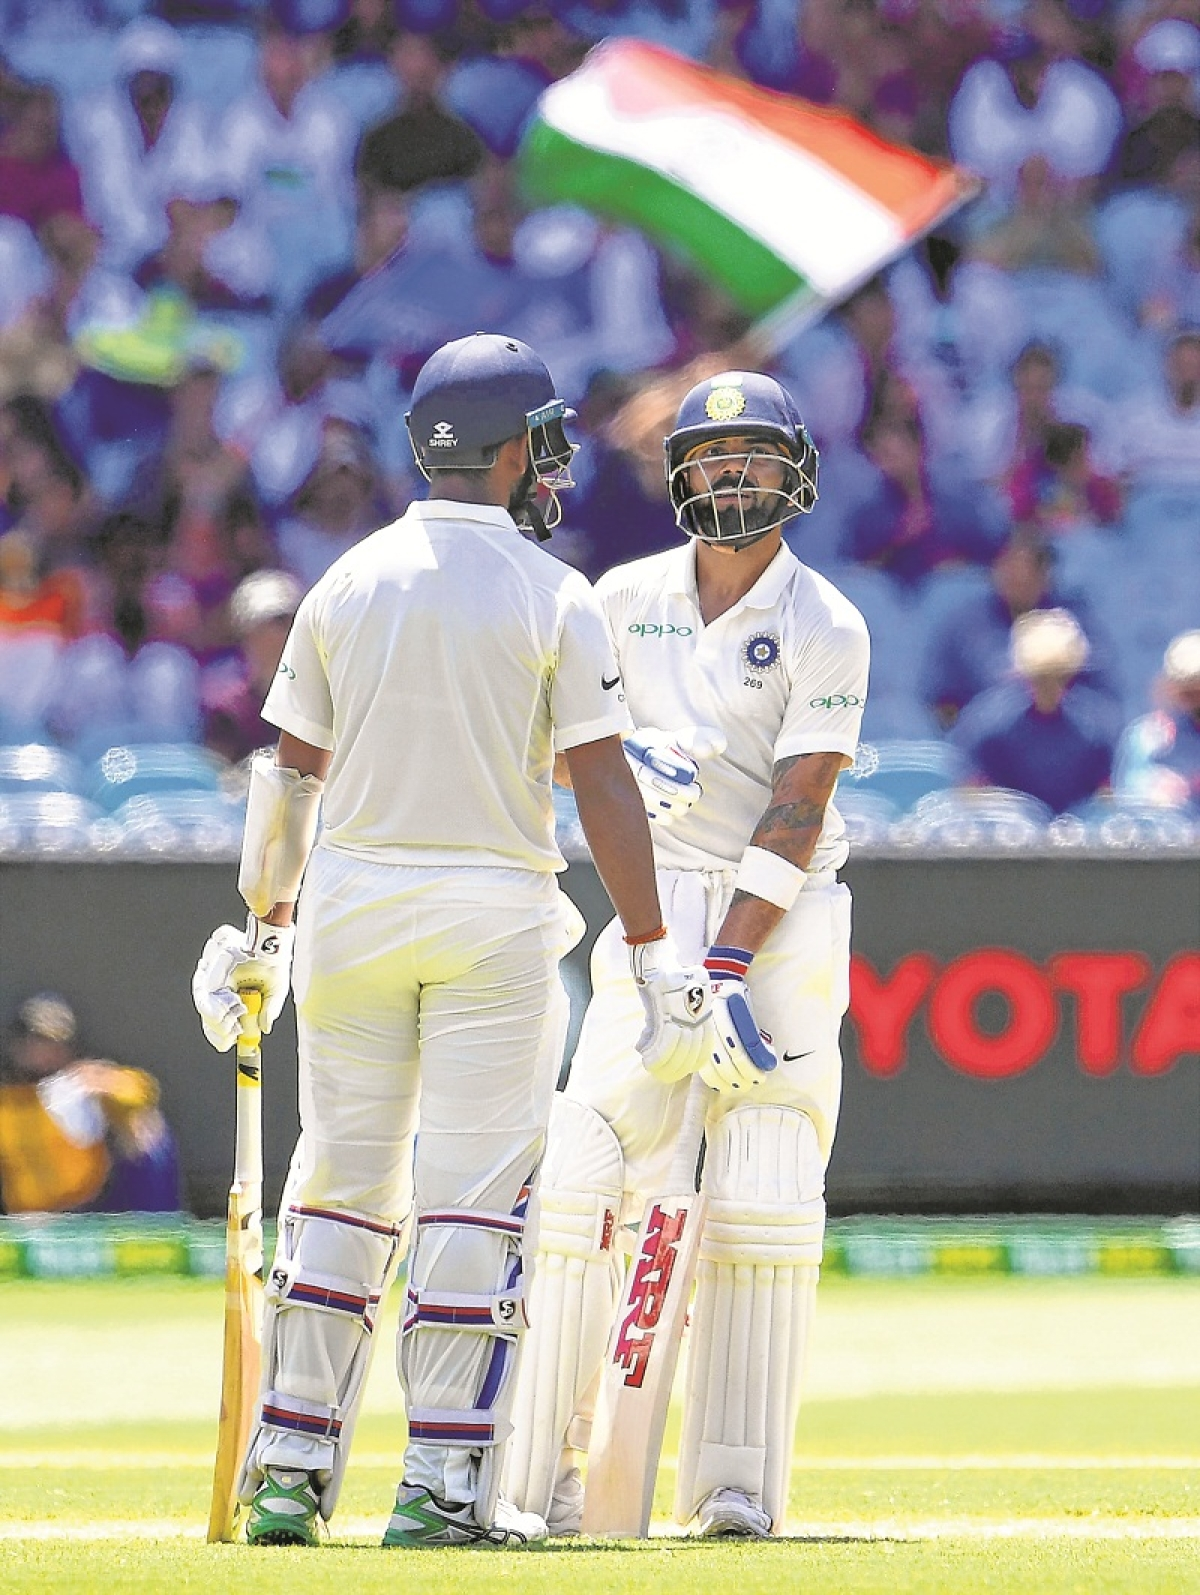 India's batsman Virat Kohli (R) talks to his teammate Cheteshwar Pujara during day two of the third cricket Test match between Australia and India in Melbourne on December 27, 2018. (Photo by WILLIAM WEST / AFP) / -- IMAGE RESTRICTED TO EDITORIAL USE - STRICTLY NO COMMERCIAL USE --